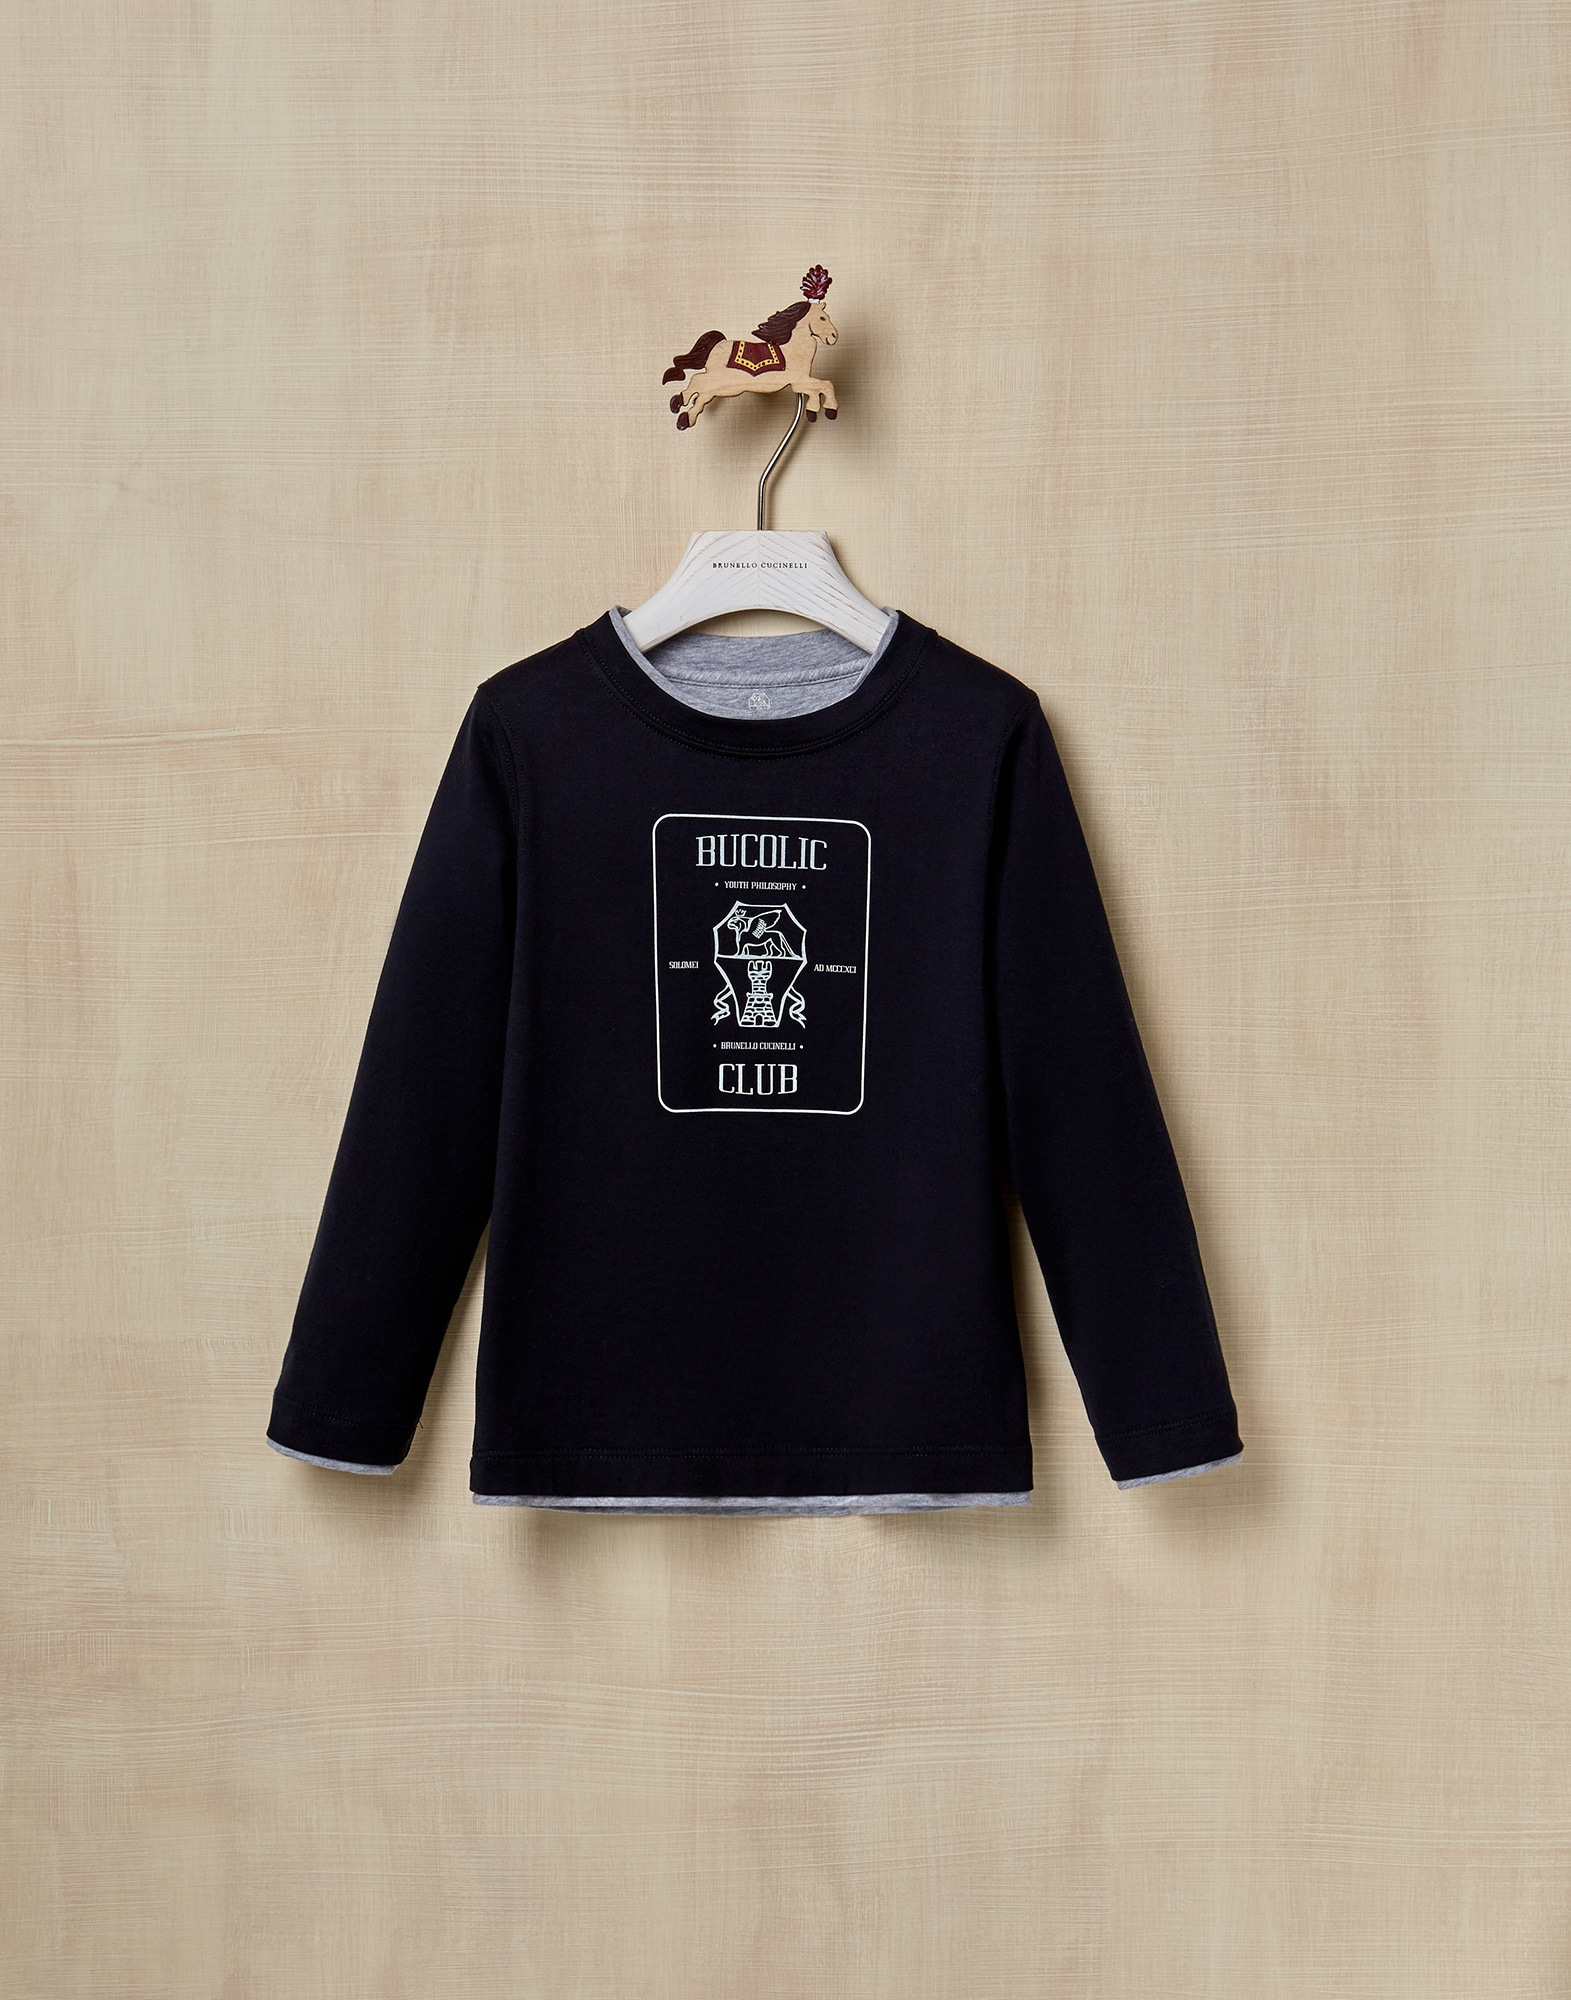 T-Shirt Navy Blue Boy 1 - Brunello Cucinelli